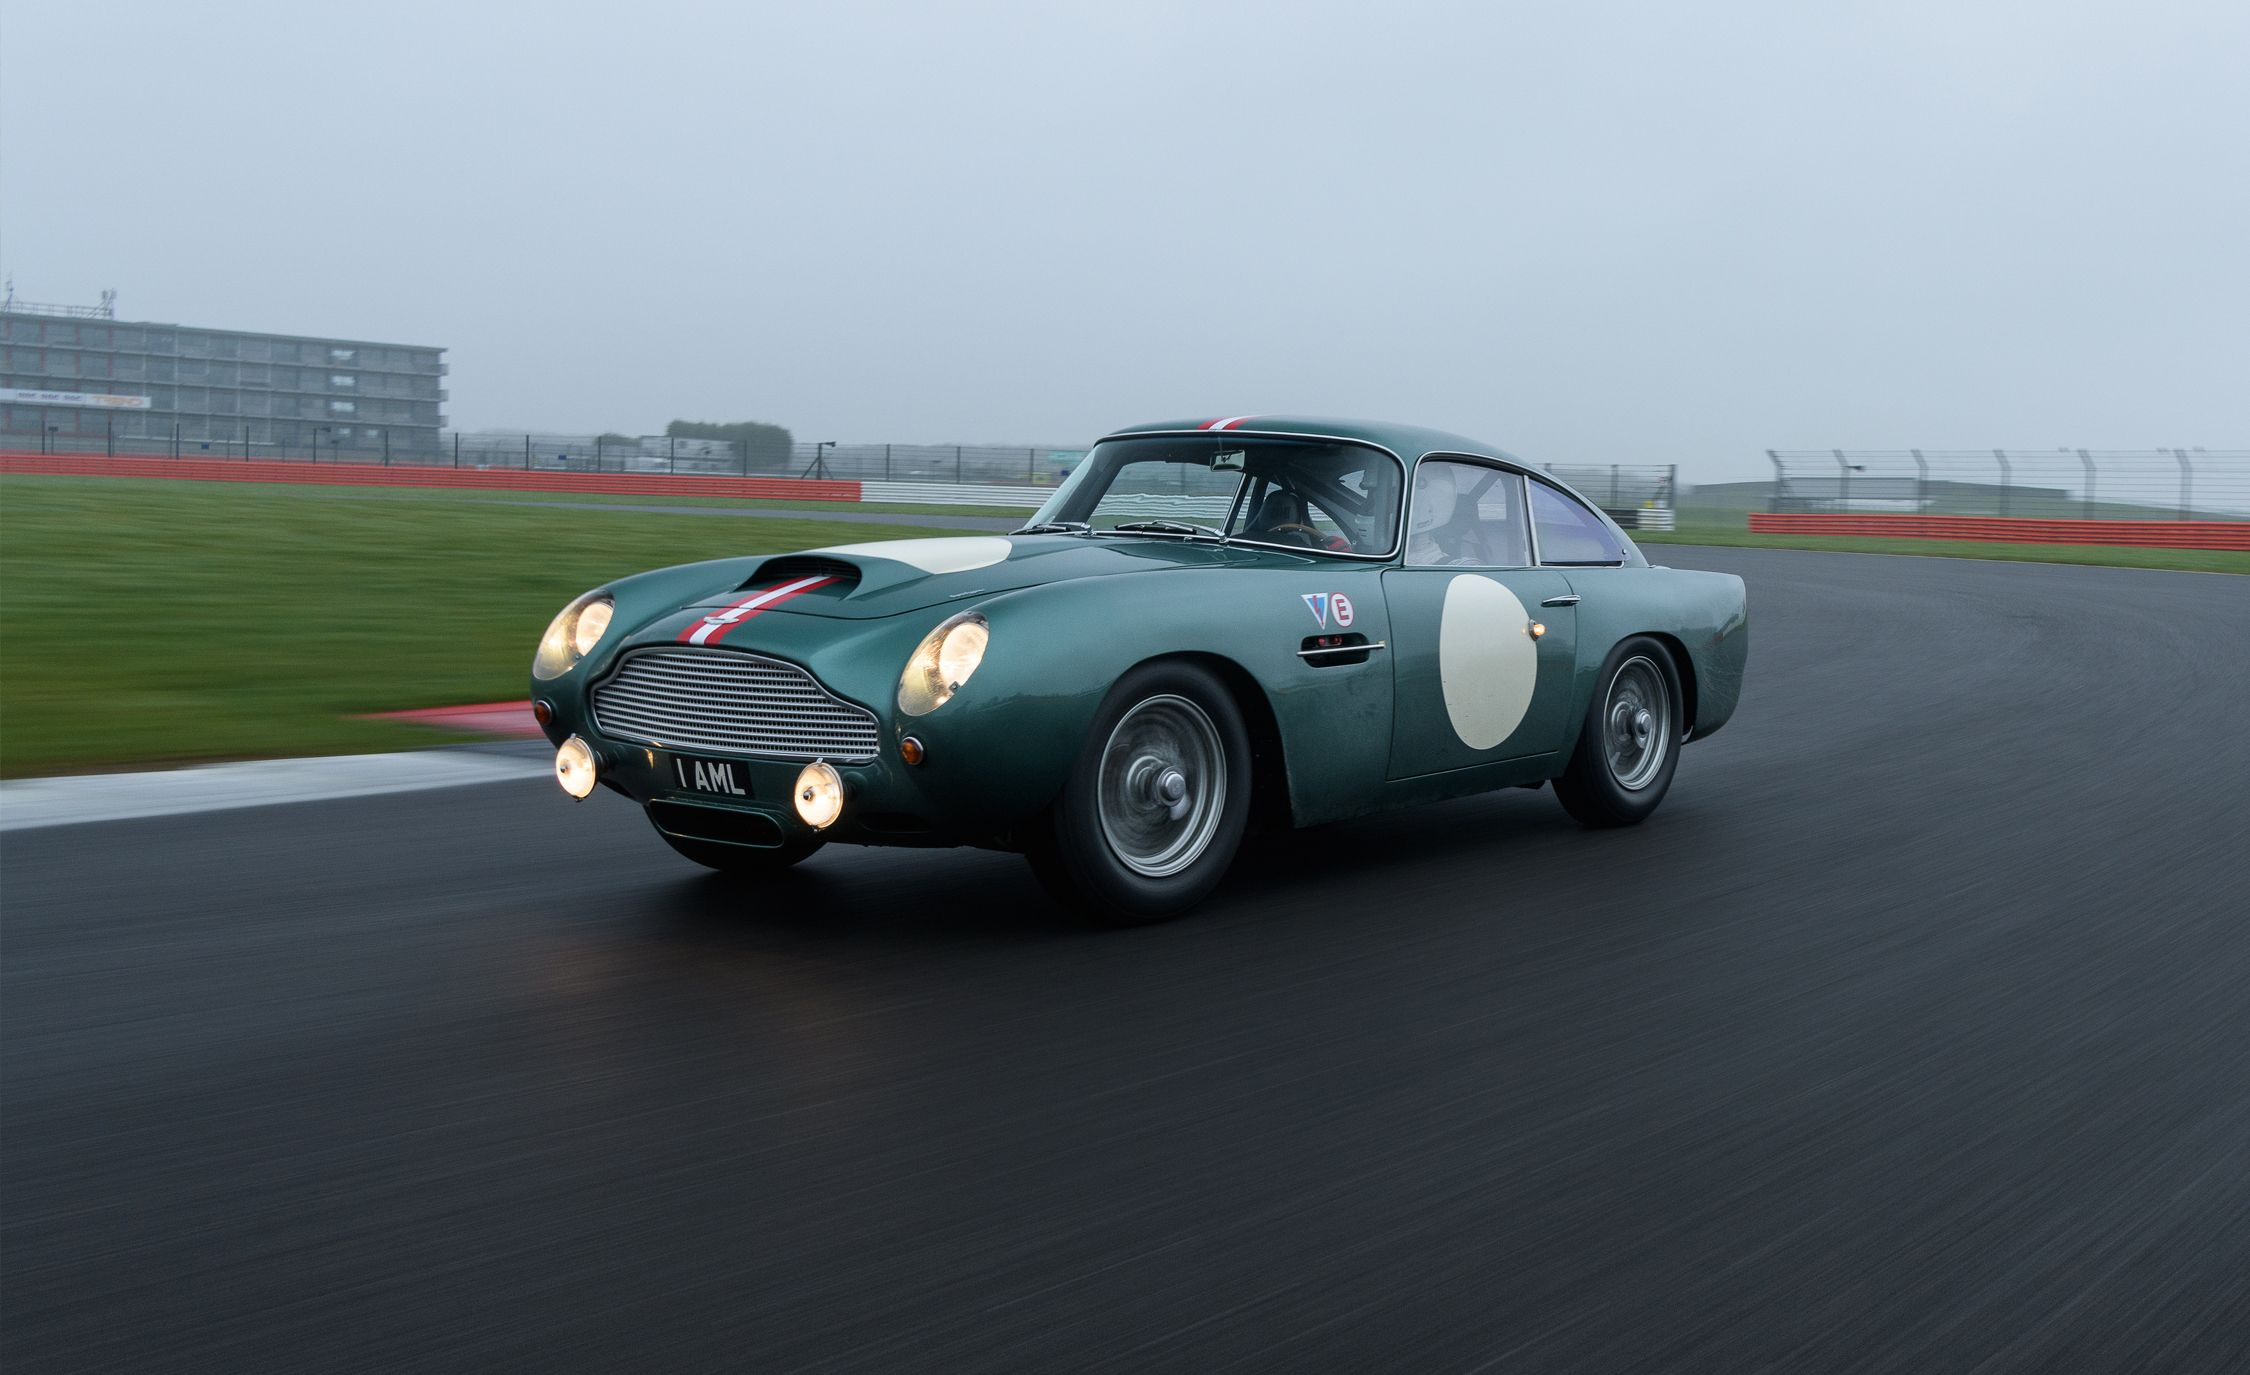 2018 Aston Martin Db4 Gt Continuation A Brand New Old Car